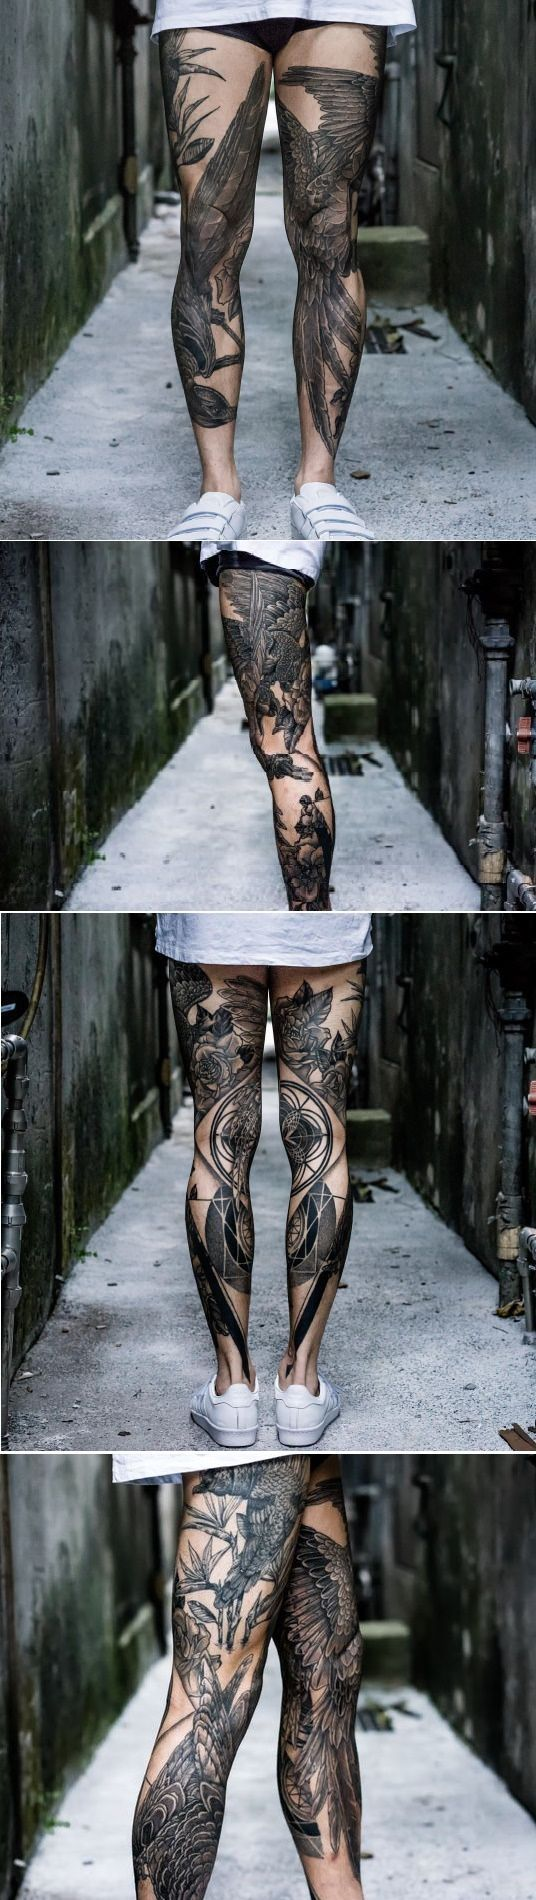 Im going to be honest i don't really like leg tattoos but this one is pretty damn cool.